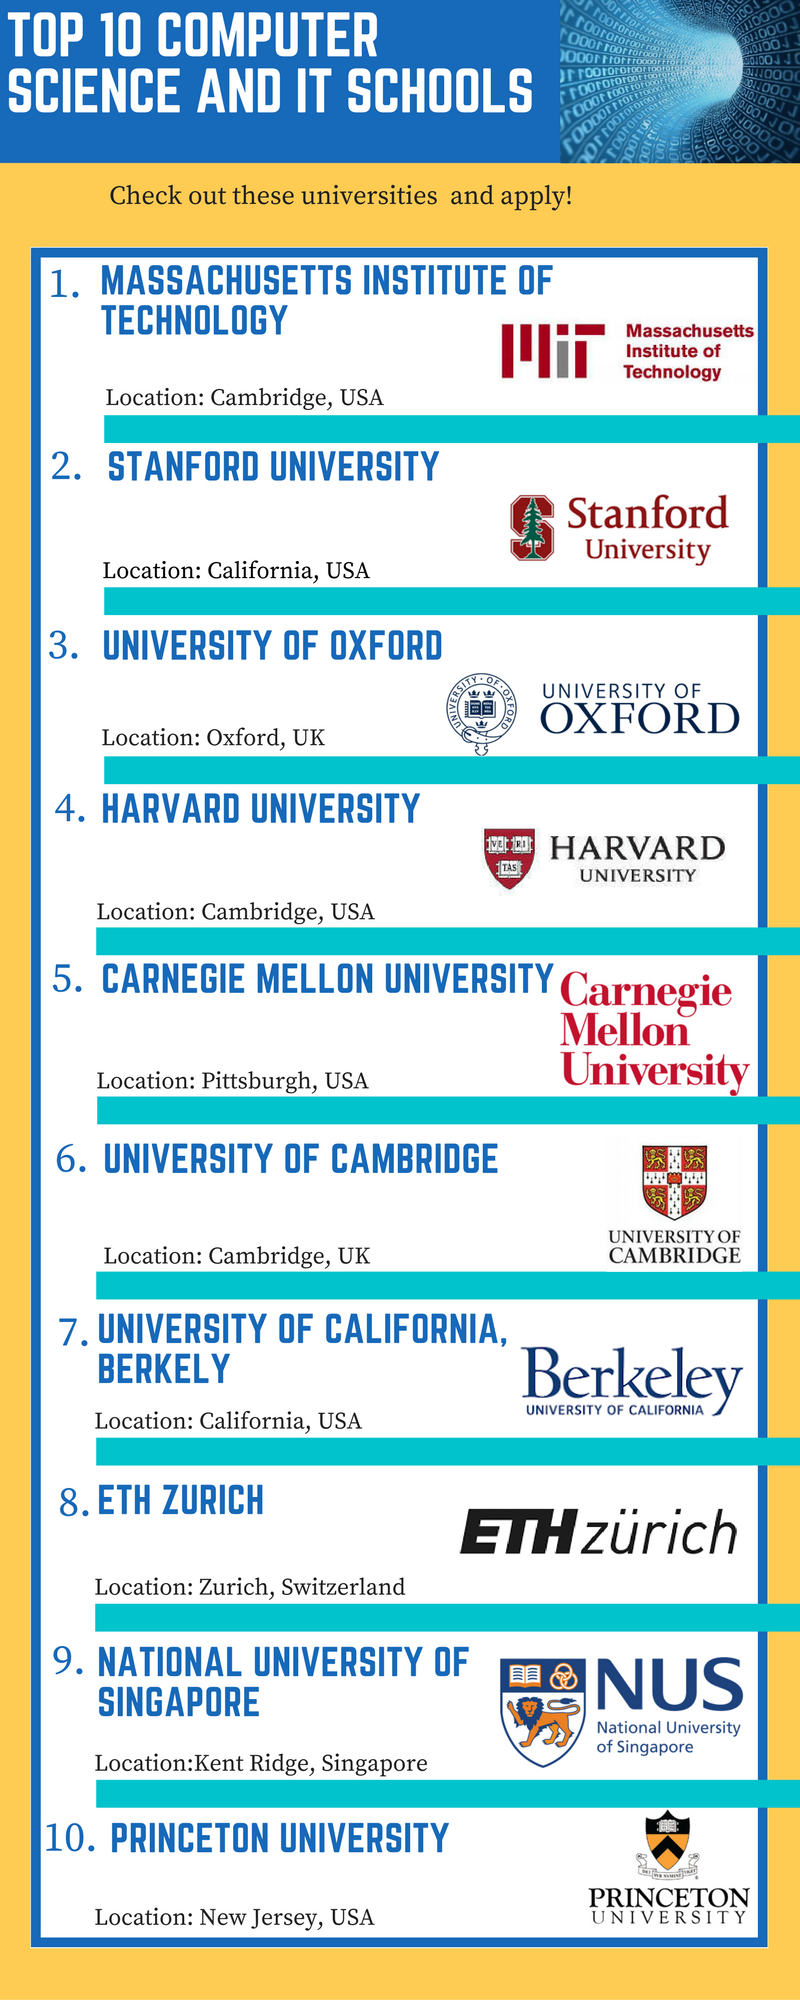 Top 10 Computer Science and IT universities